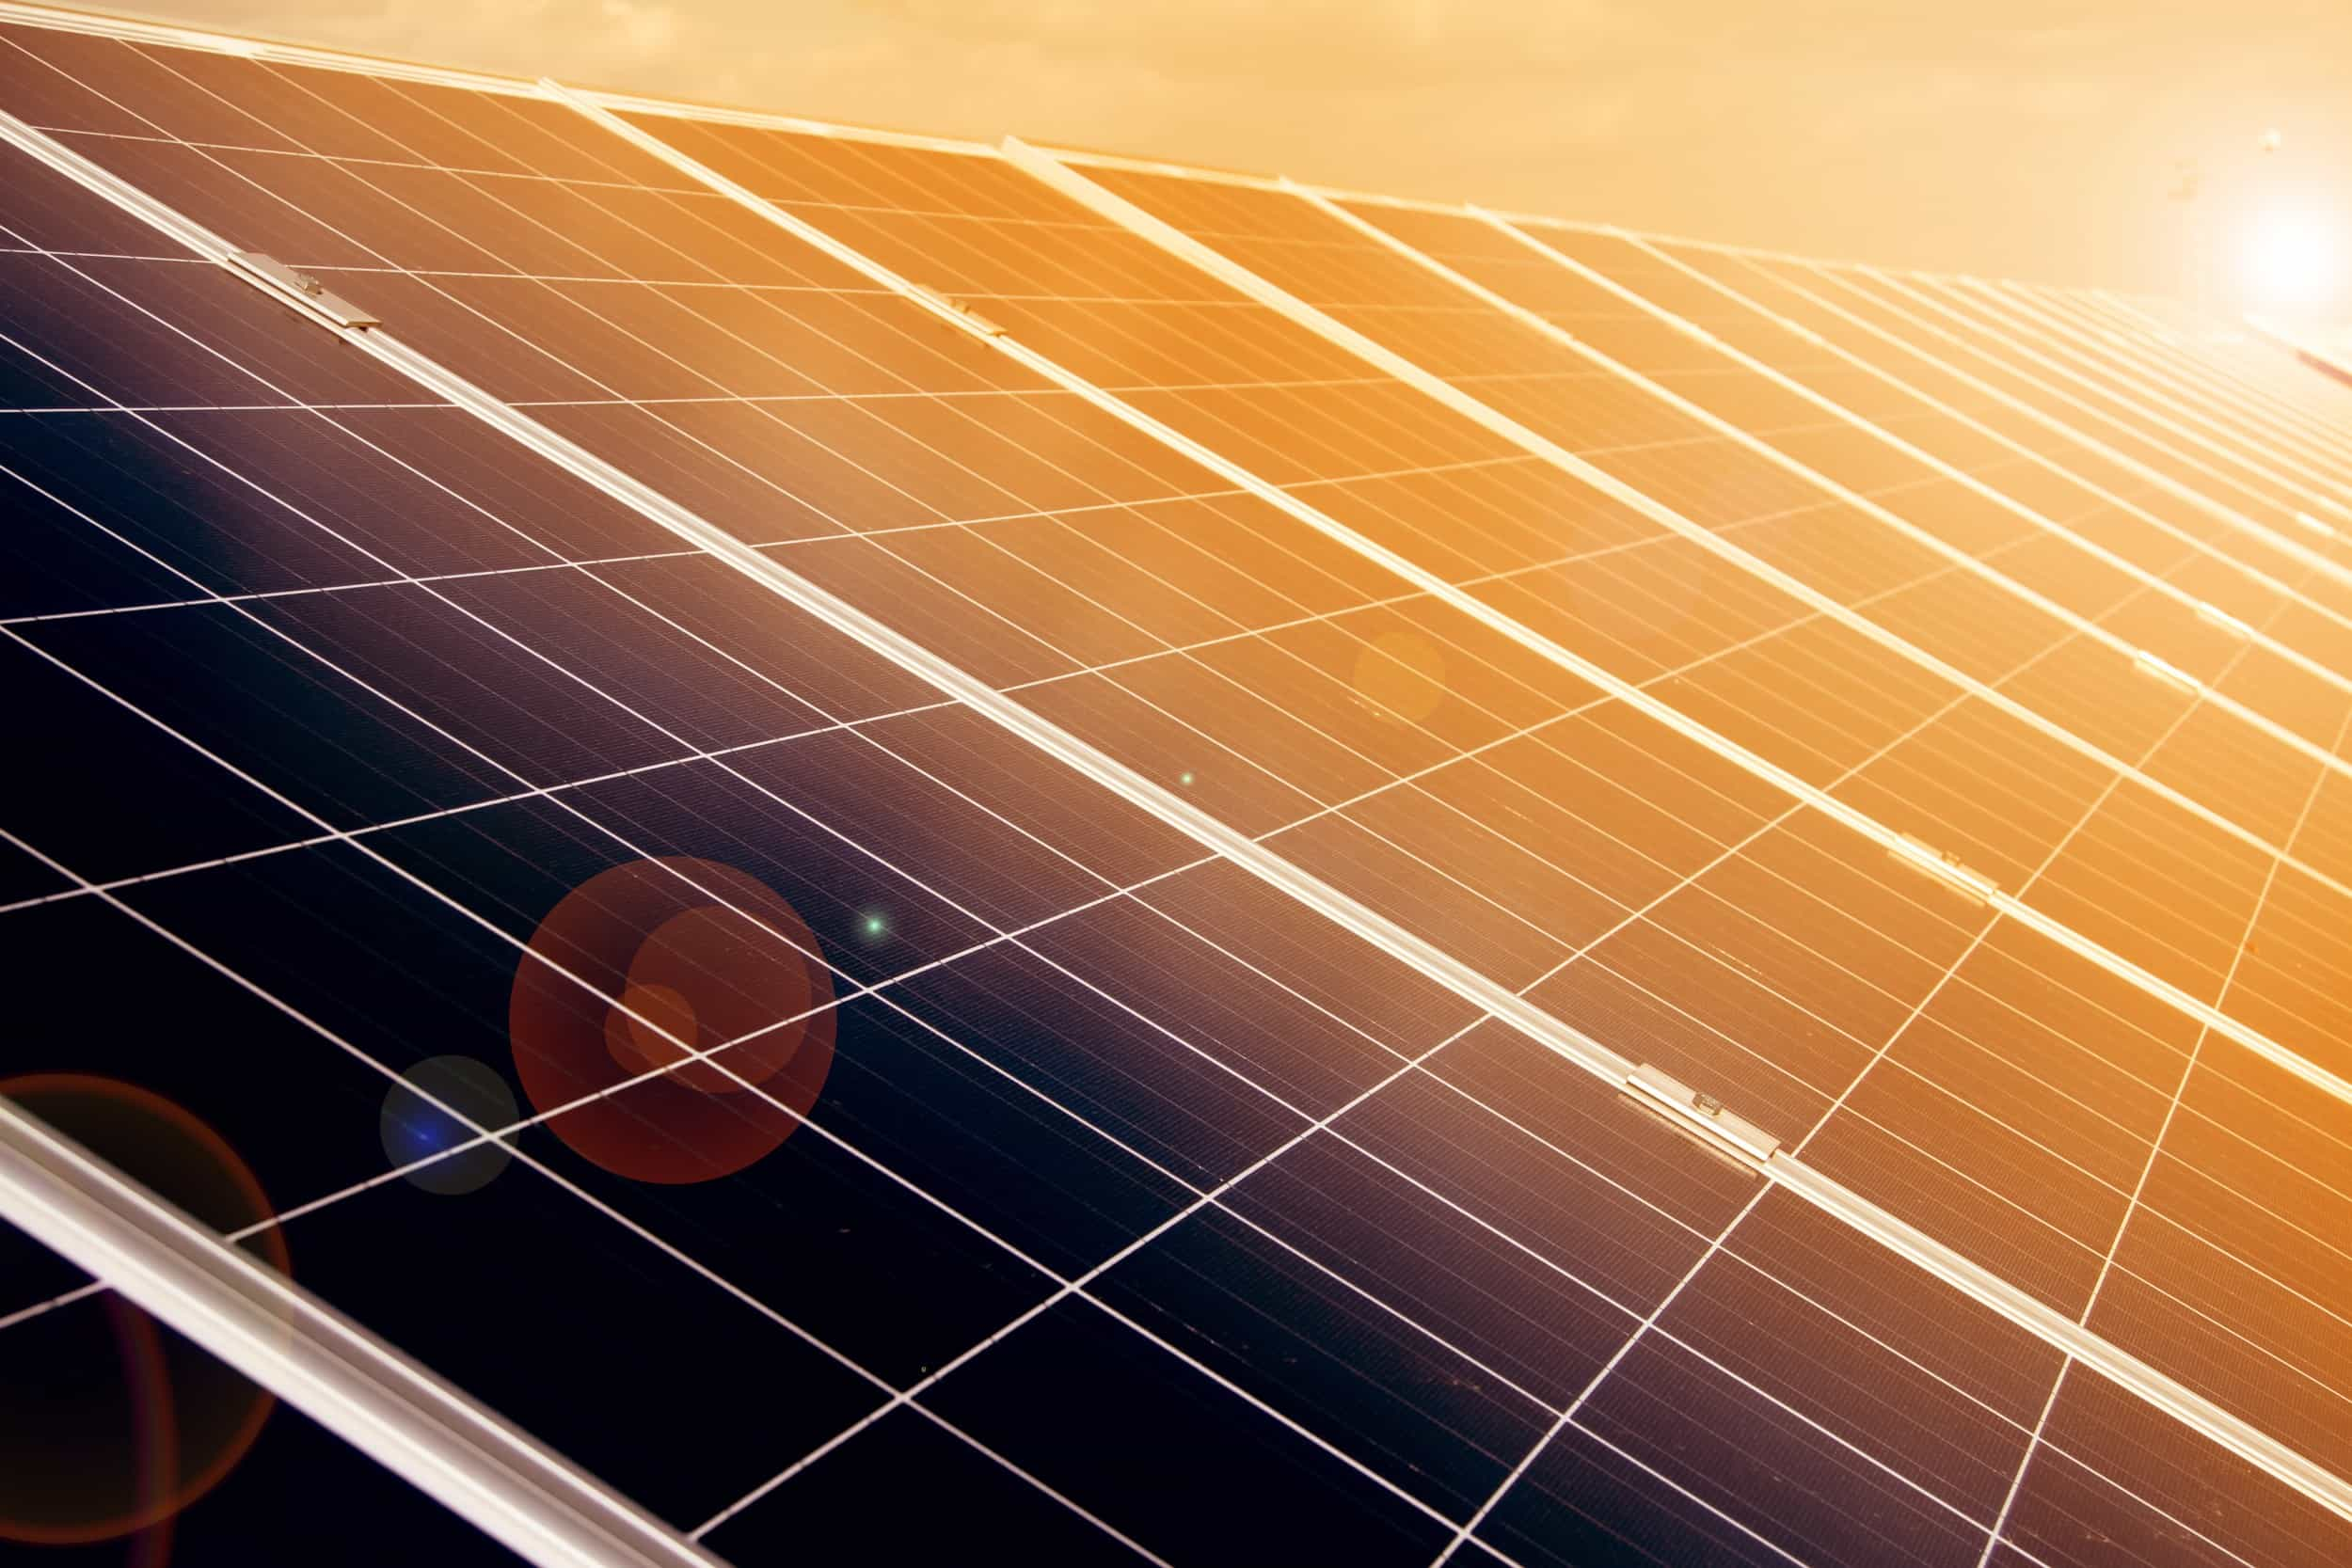 Solar panel background image